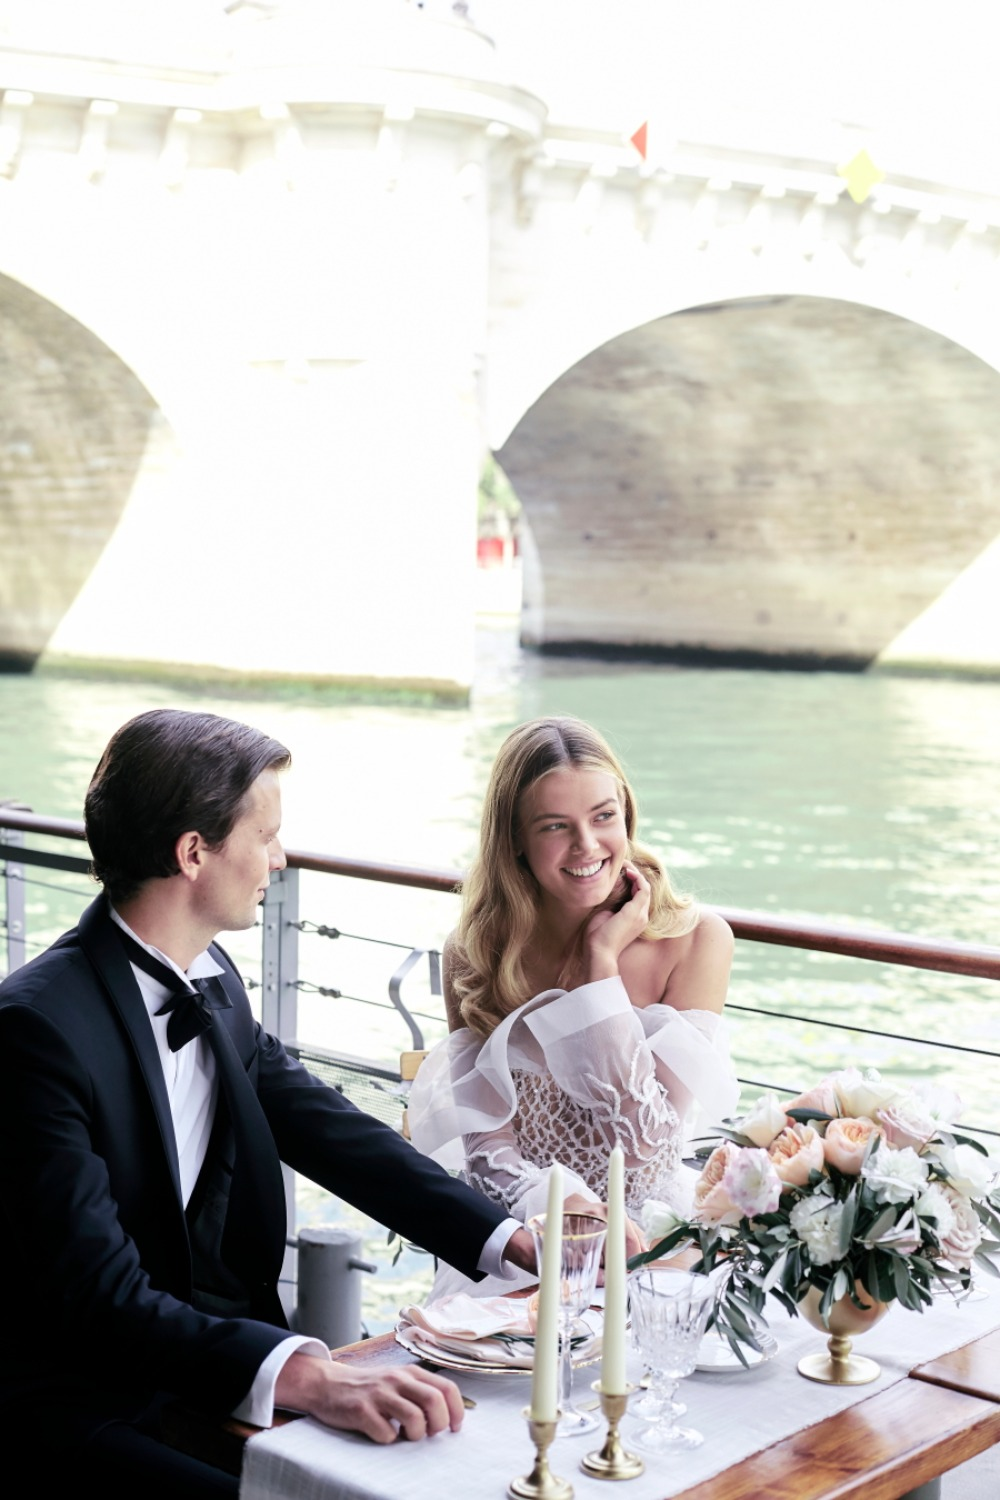 Romantic elopement ideas in Paris